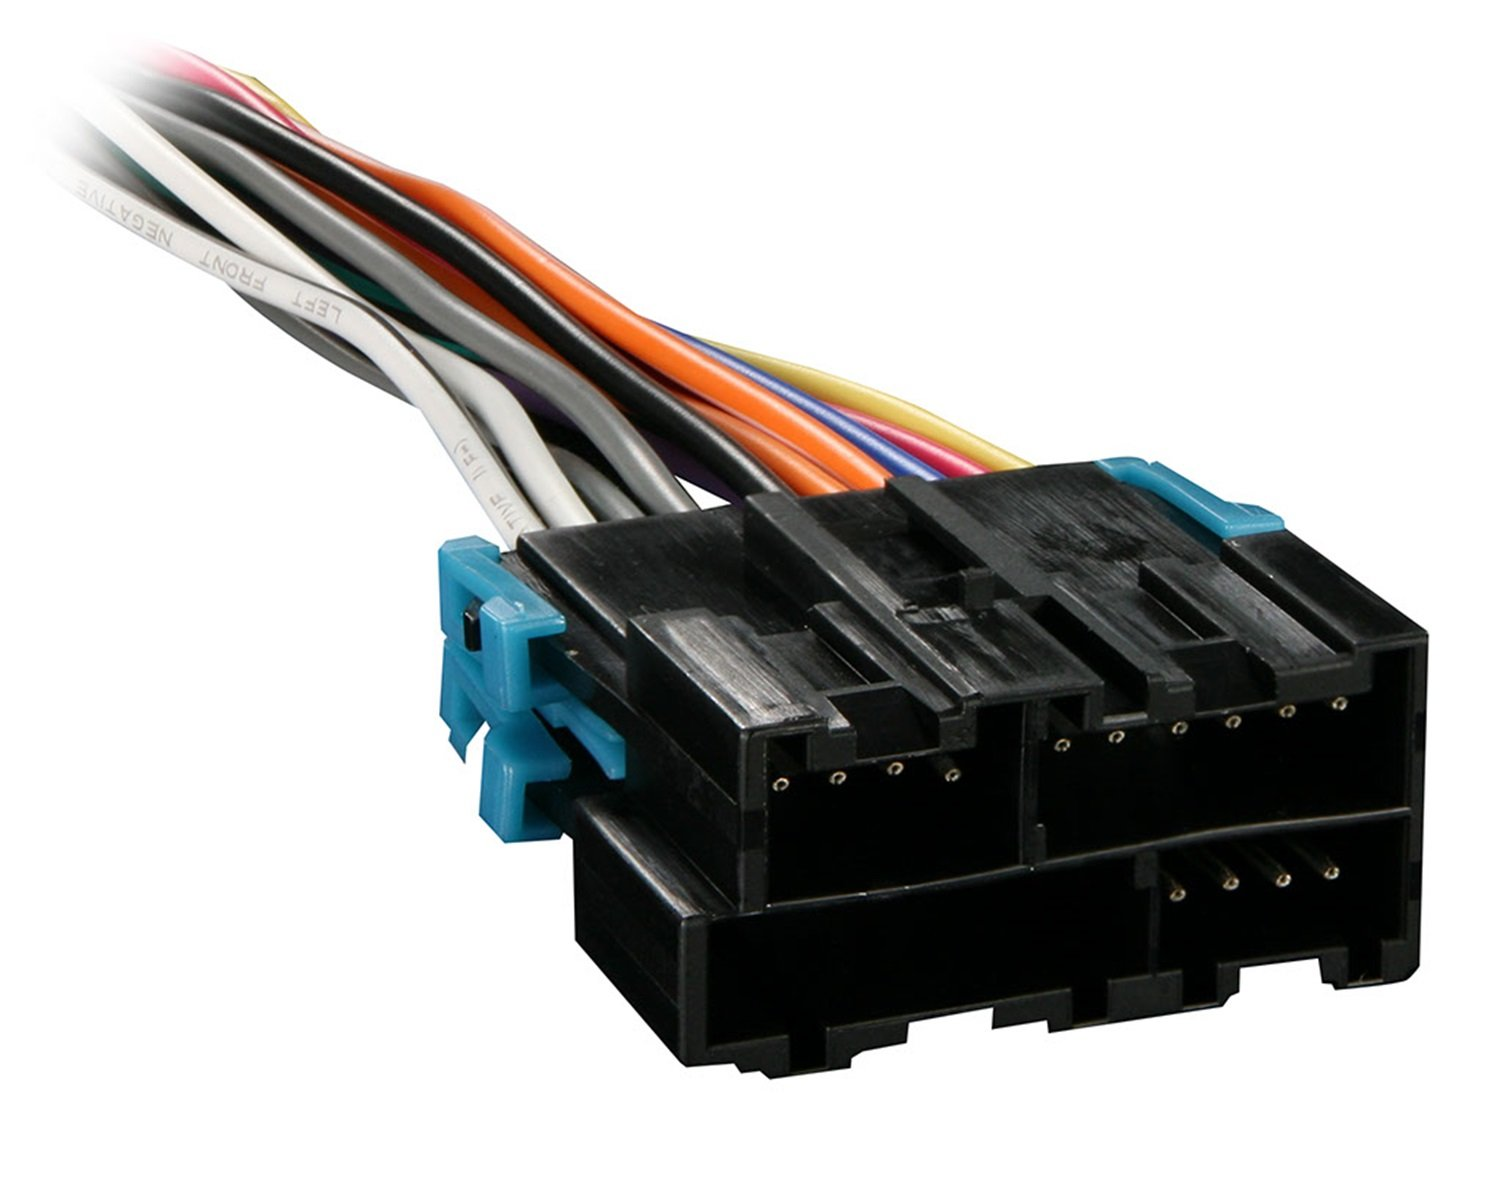 61 CwjZt1hL._SL1500_ radio wiring harnesses amazon com aiwa car stereo wiring harness at mifinder.co